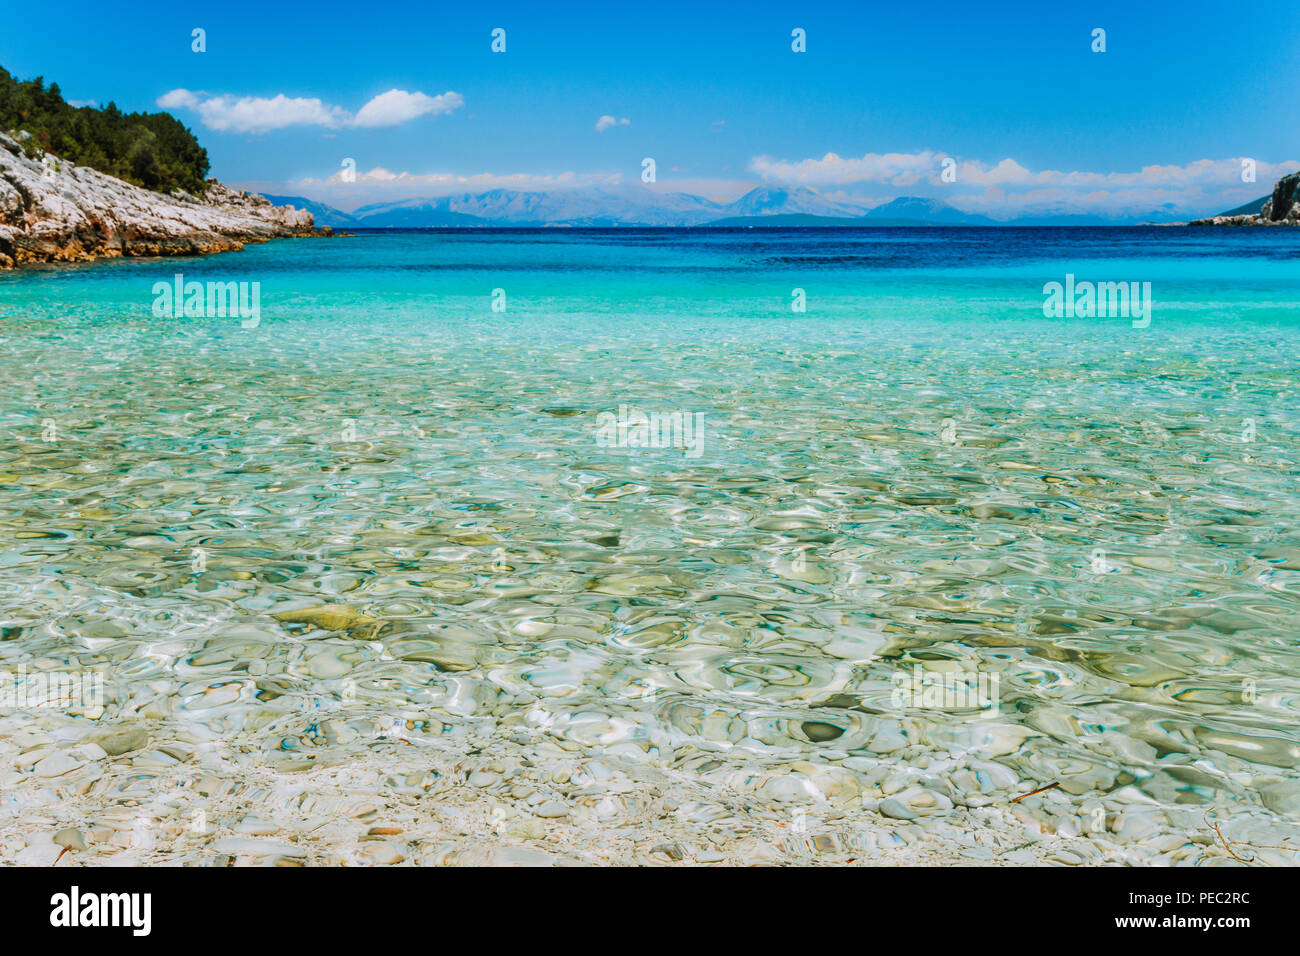 Dafnoudi beach in Kefalonia, Greece. Remote lagoon with pure clean turquoise sea water, white rocks and cypress trees - Stock Image